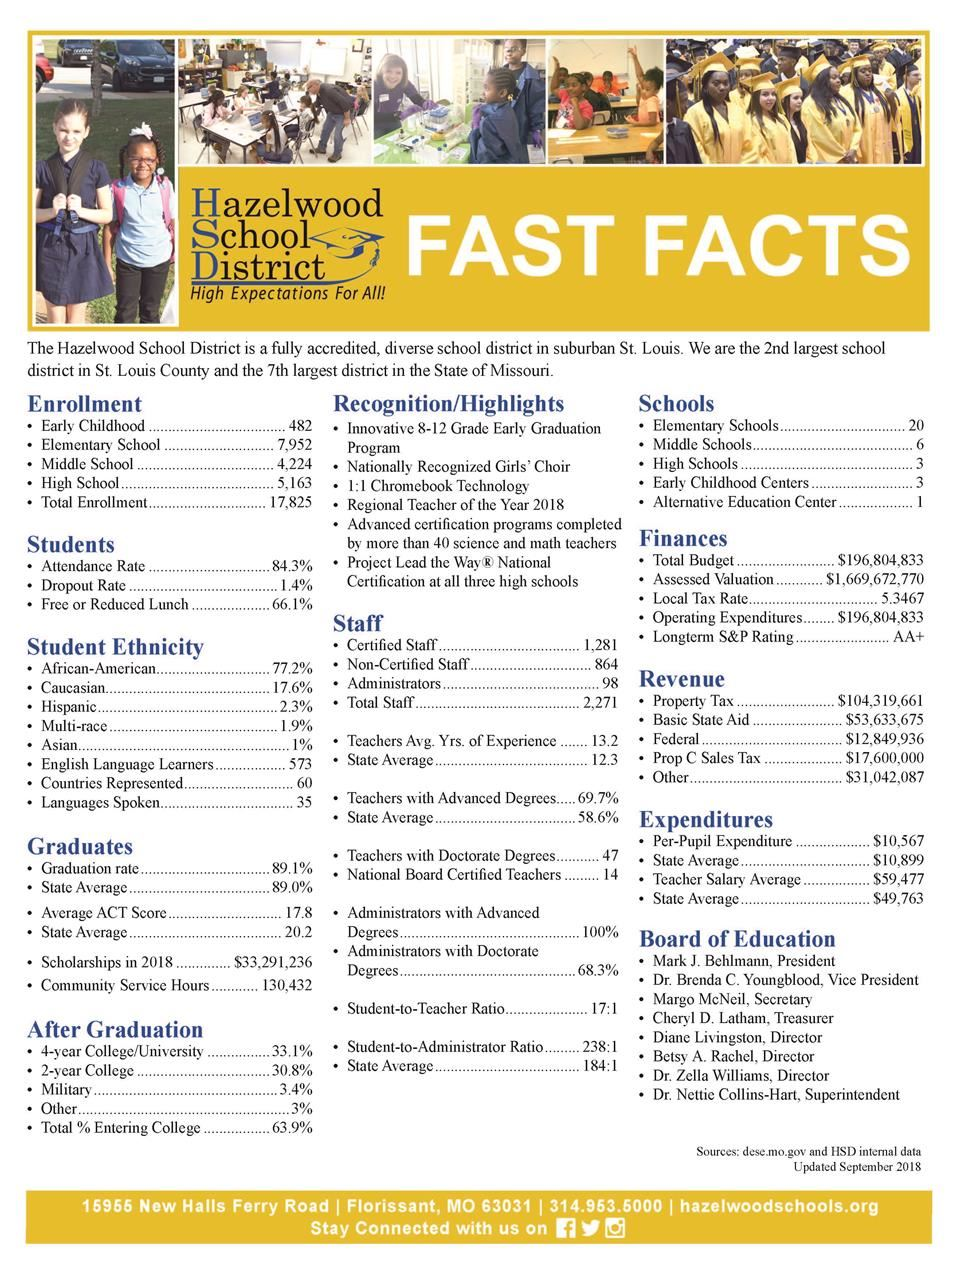 HSD Fast Facts